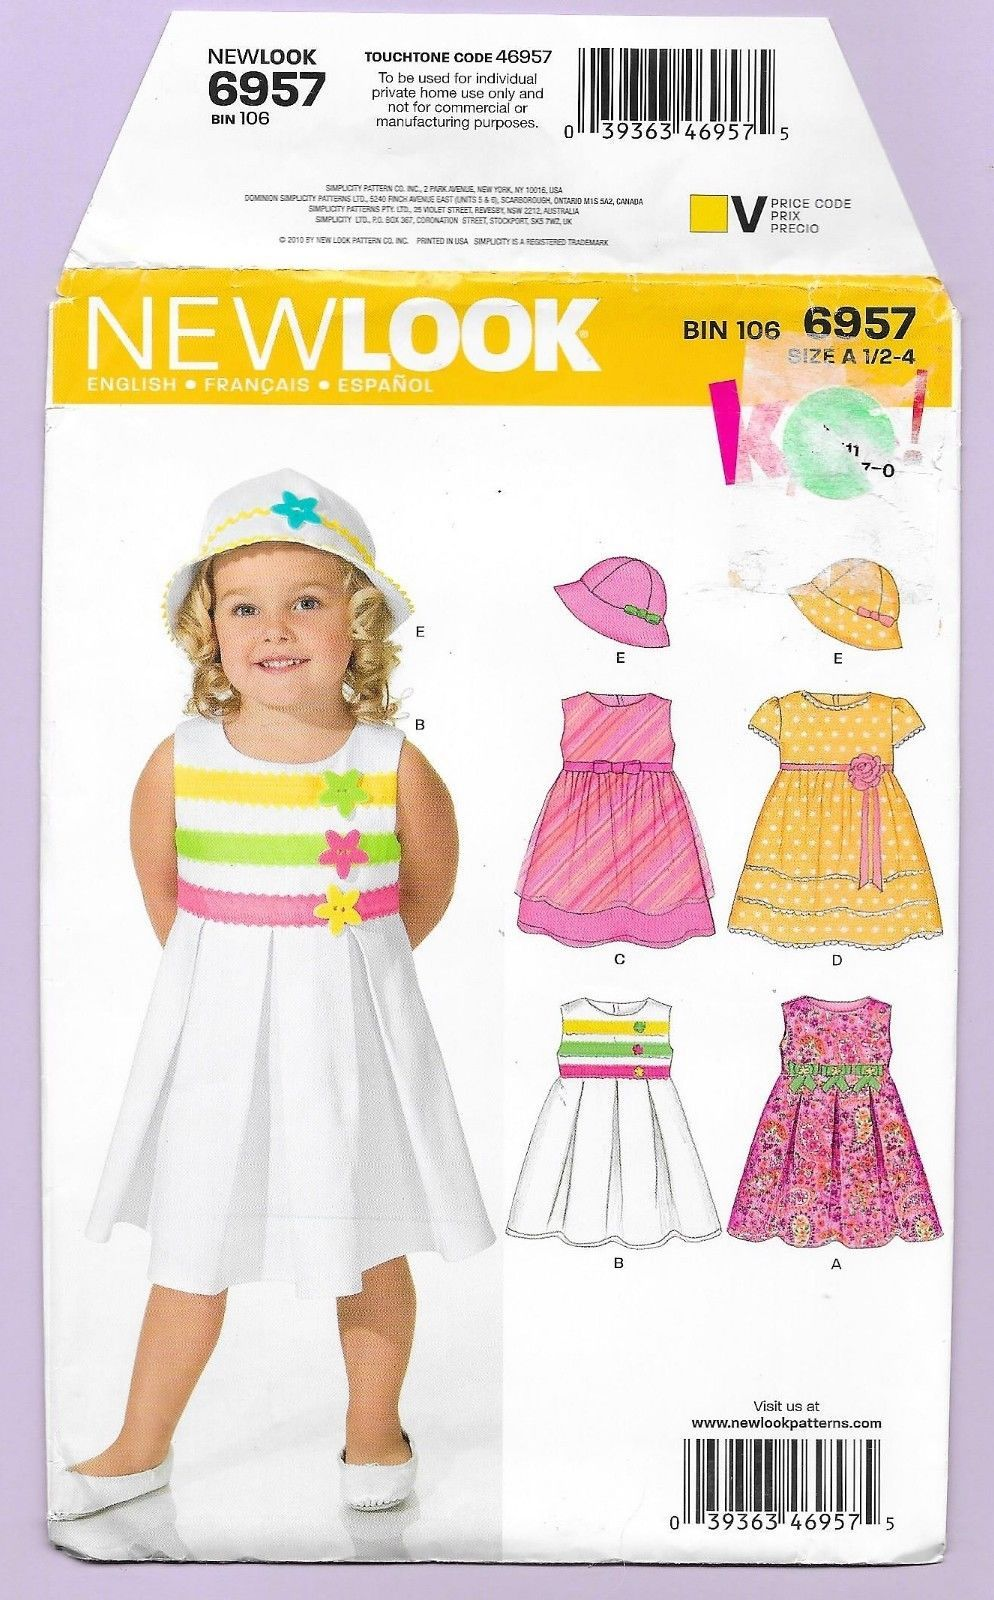 Details about toddler dresses hats pinafore jumper sizes new look